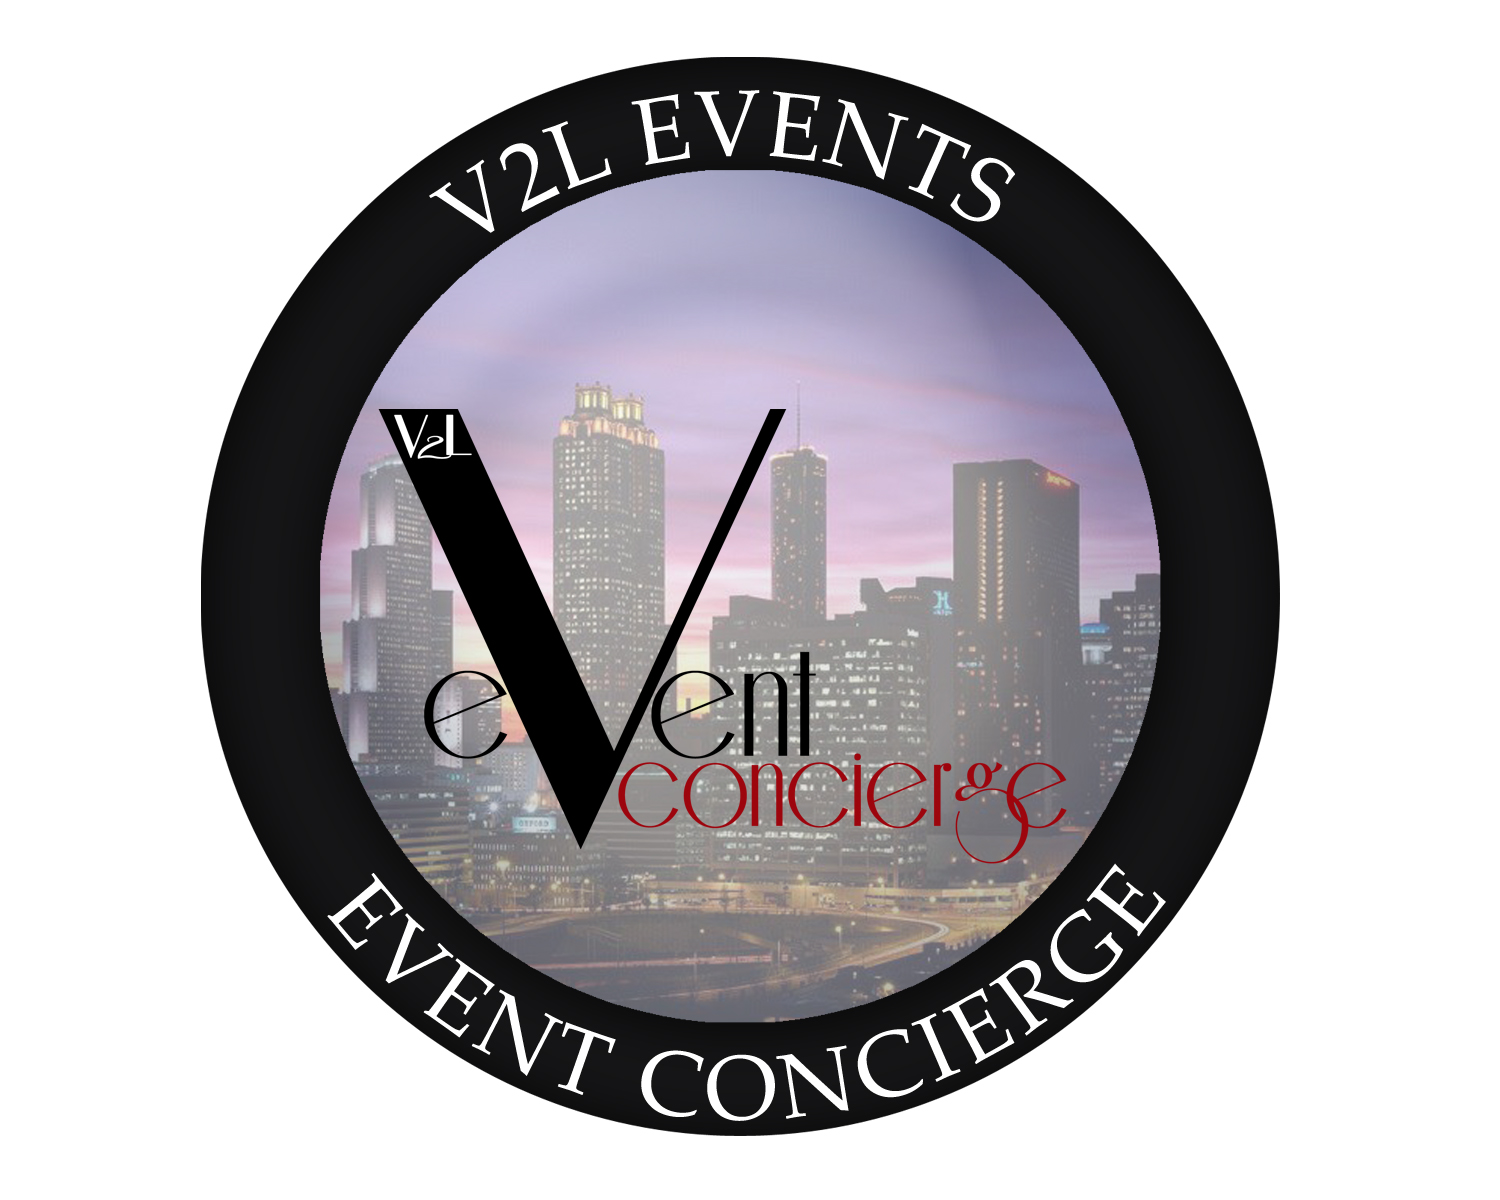 V2L Event Concierge